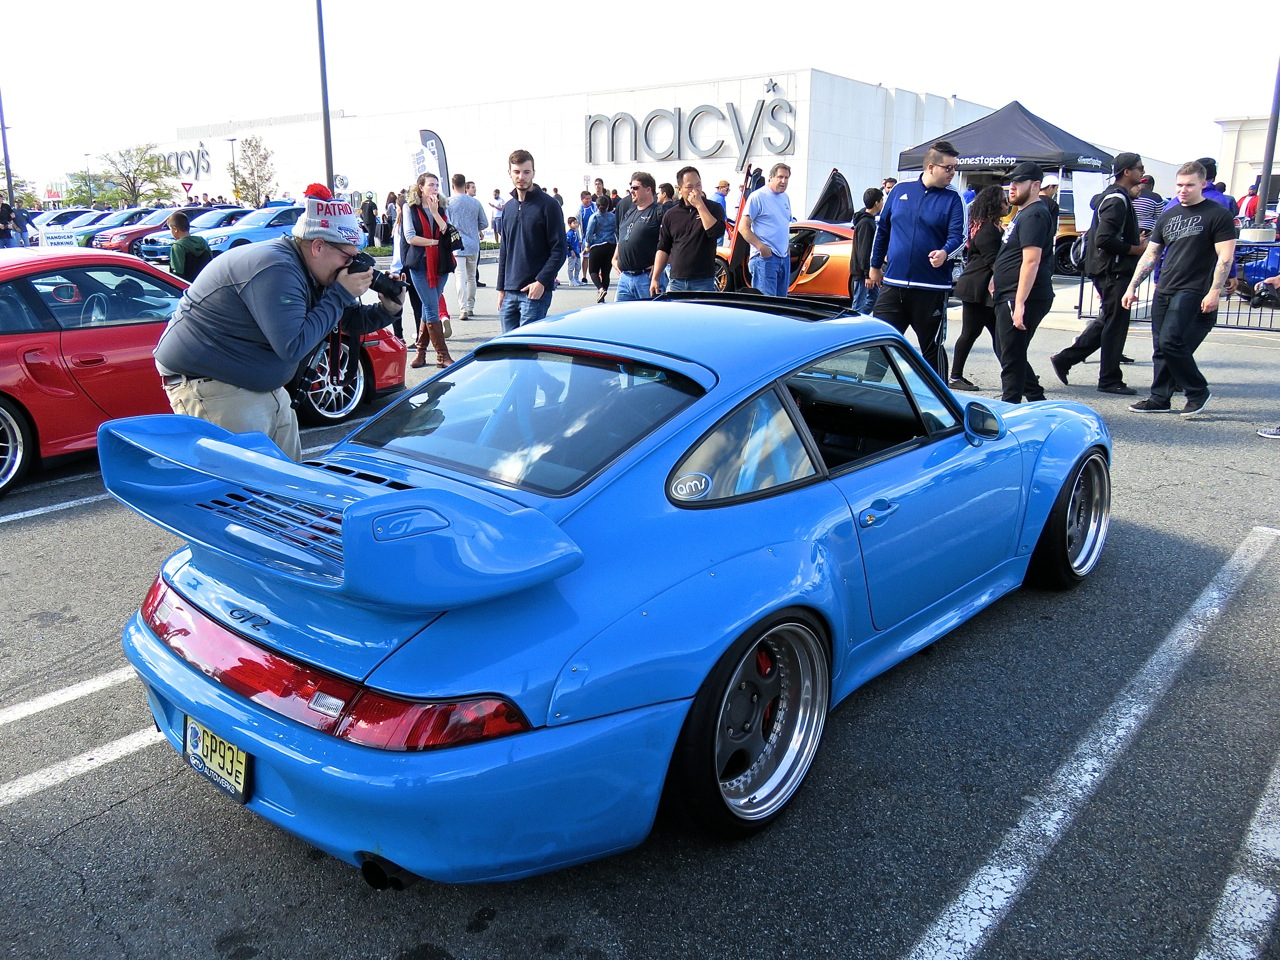 Porsche 993 Turbo at Garden State Plaza